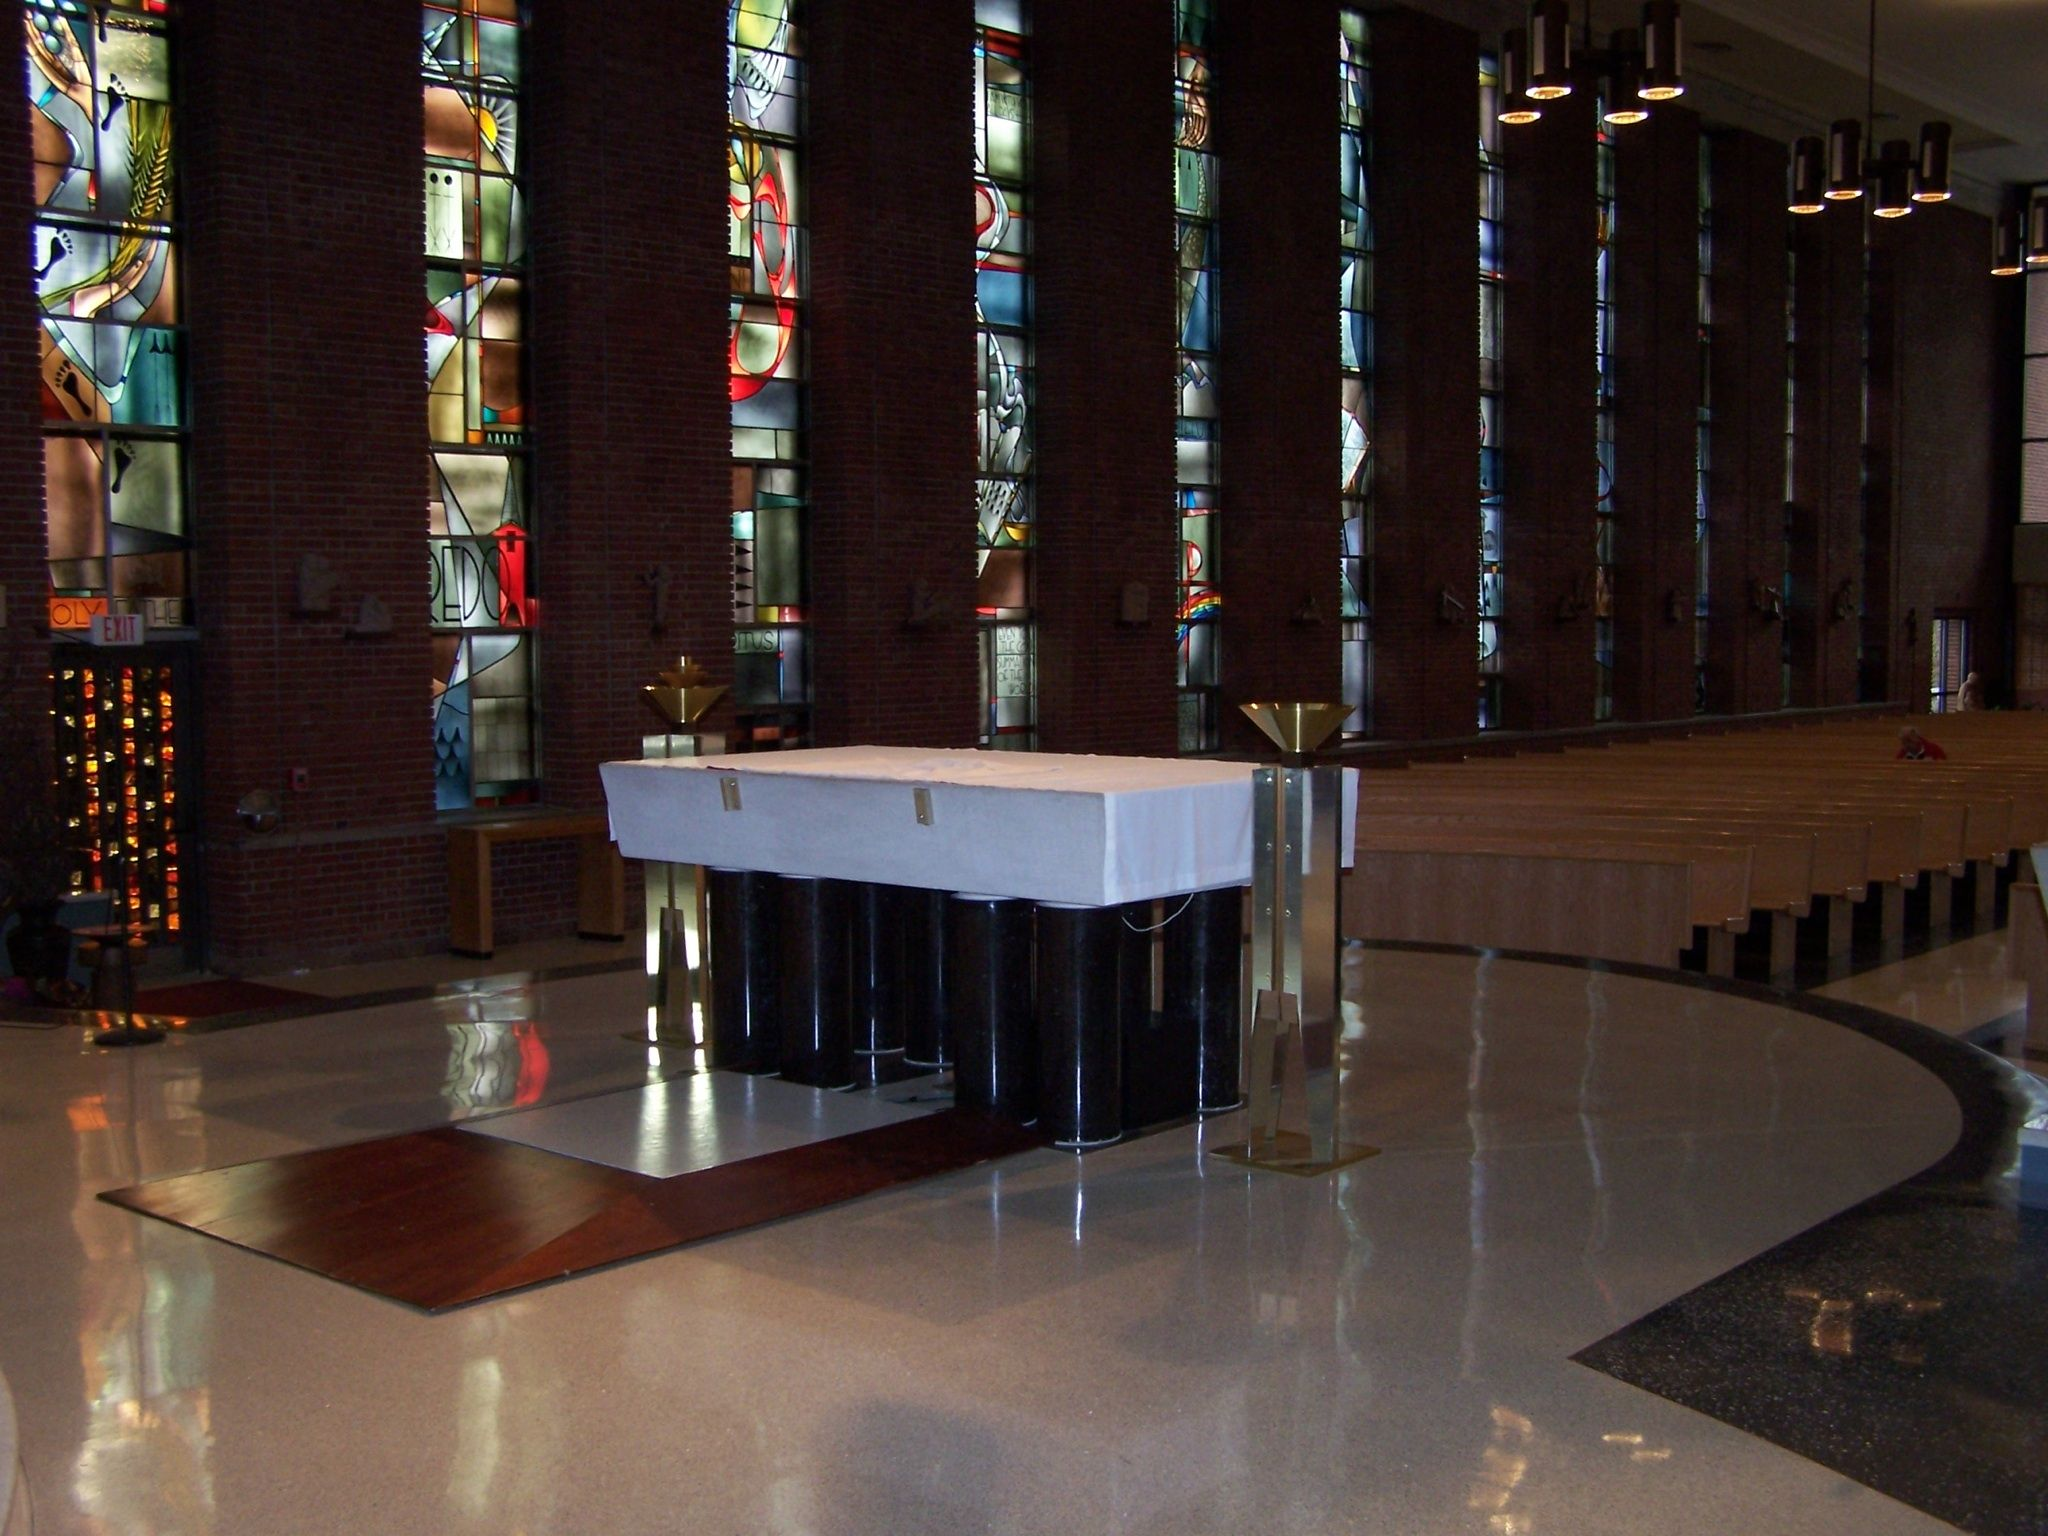 St. Peter Catholic Church, Kirkwood, MO Taper candle